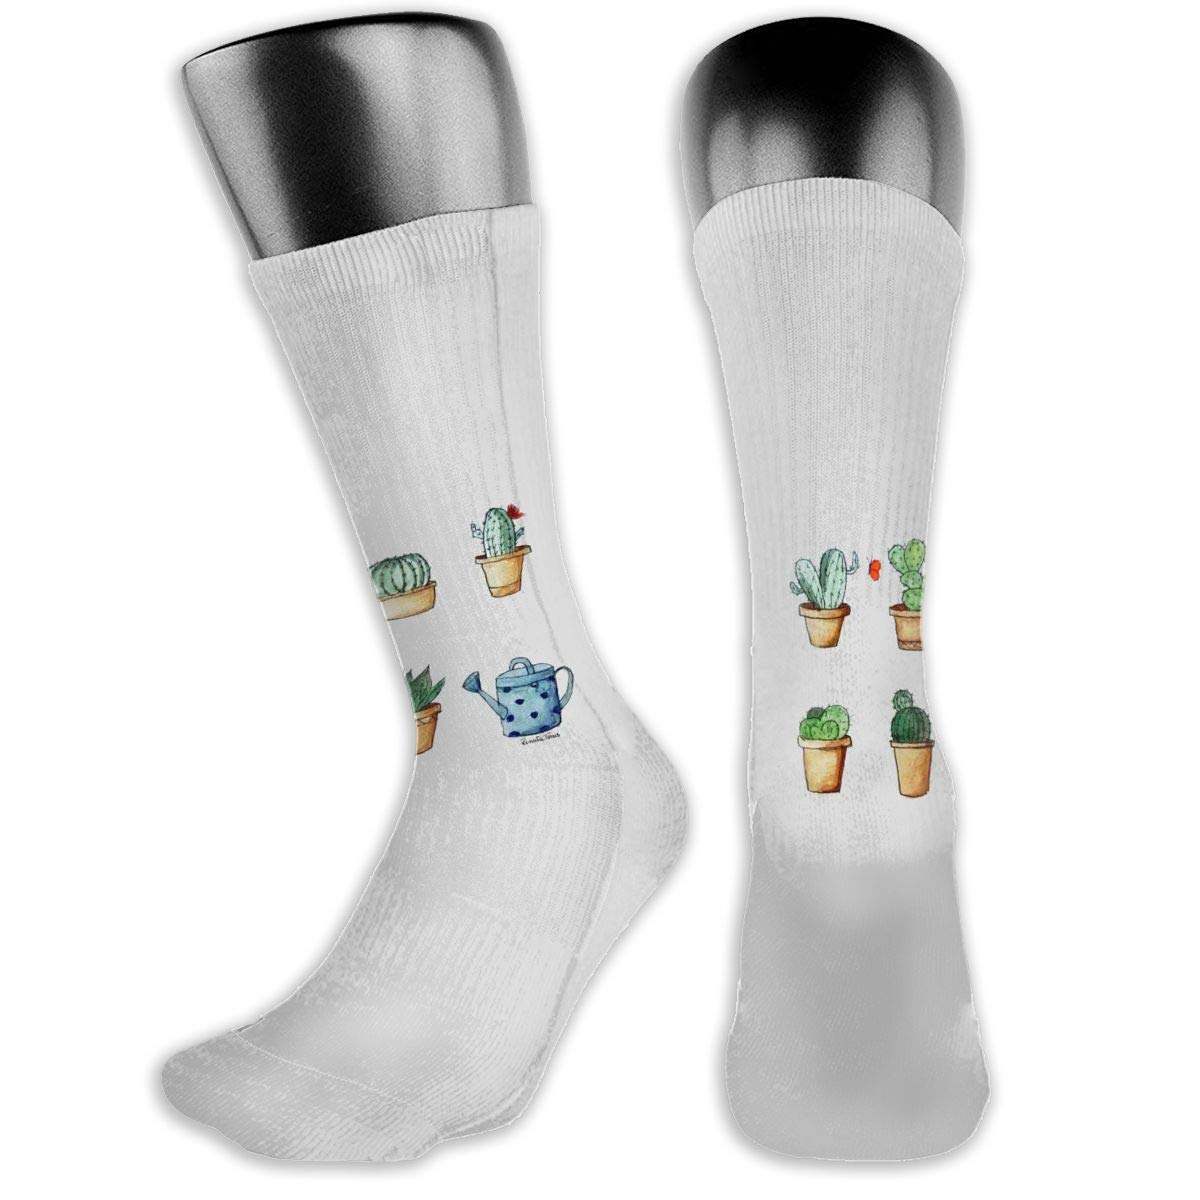 OLGCZM Watercolor Cactus Men Womens Thin High Ankle Casual Socks Fit Outdoor Hiking Trail